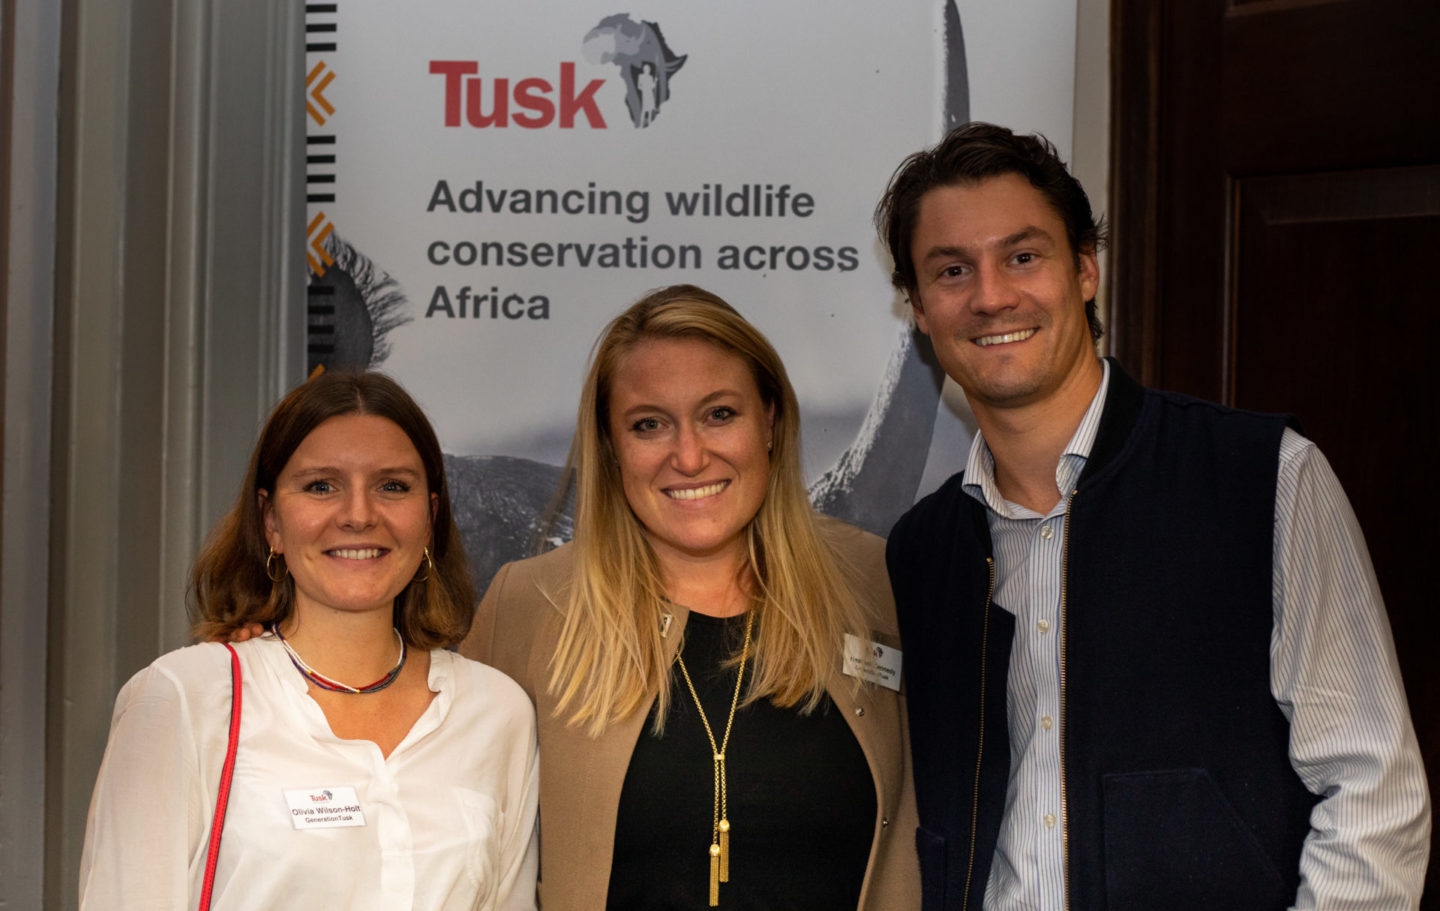 Tusk Conservation Lecture 2019 - Liv Wilson-Holt, Heather Kennedy and Harry Legge from GenerationTusk